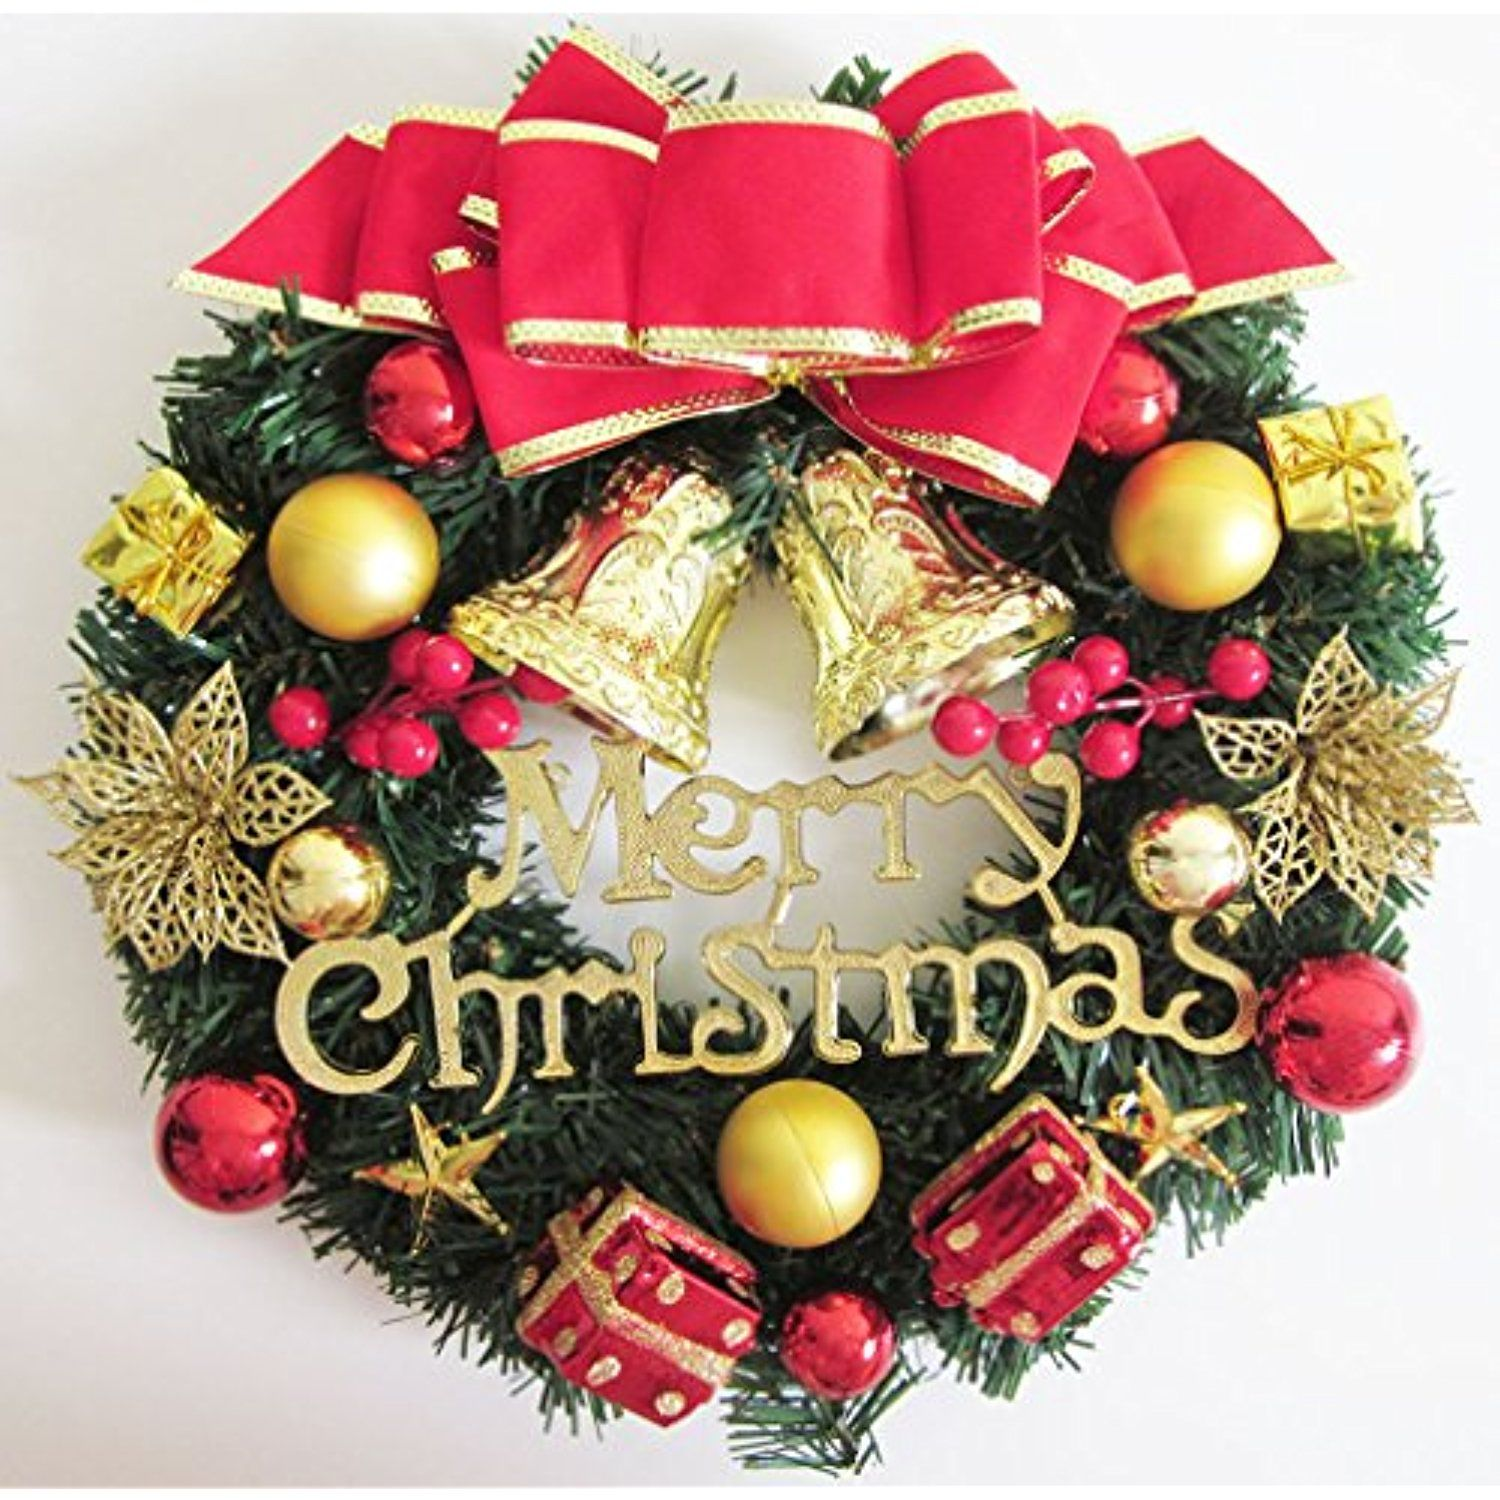 Artfen Christmas Wreath Christmas Tree Wreath Door Wall Windows